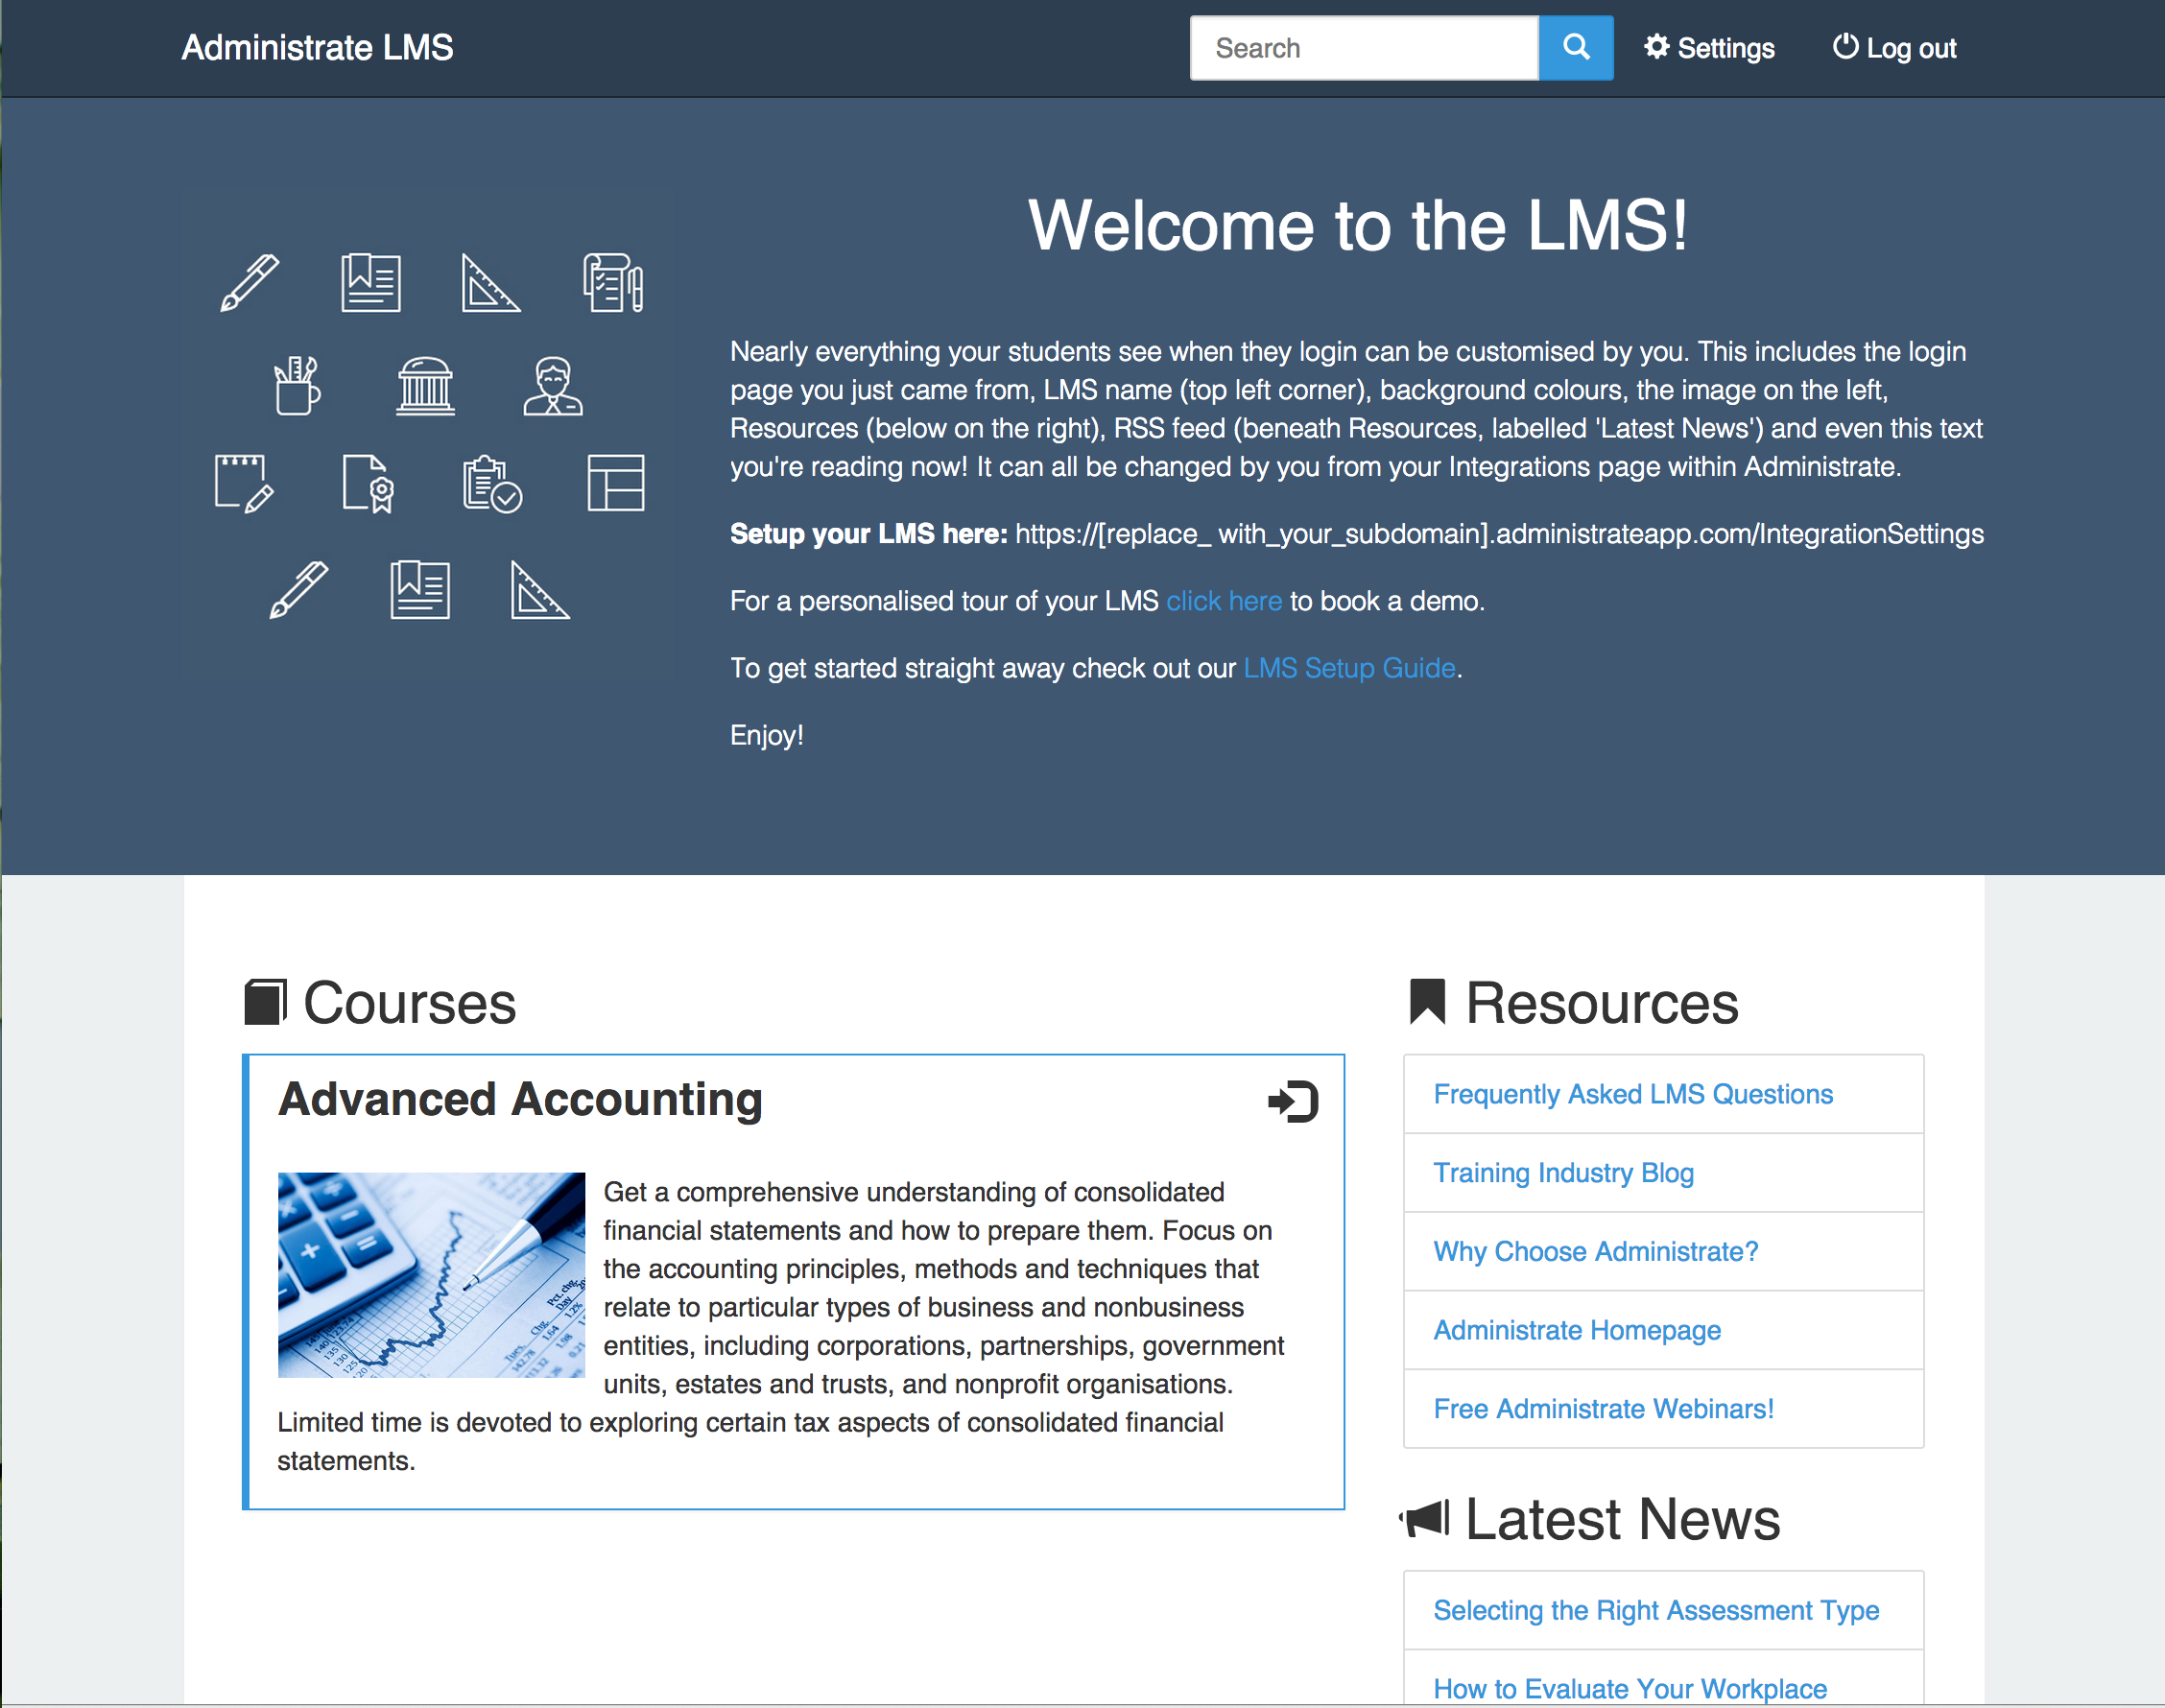 Administrate's Demo LMS Homepage